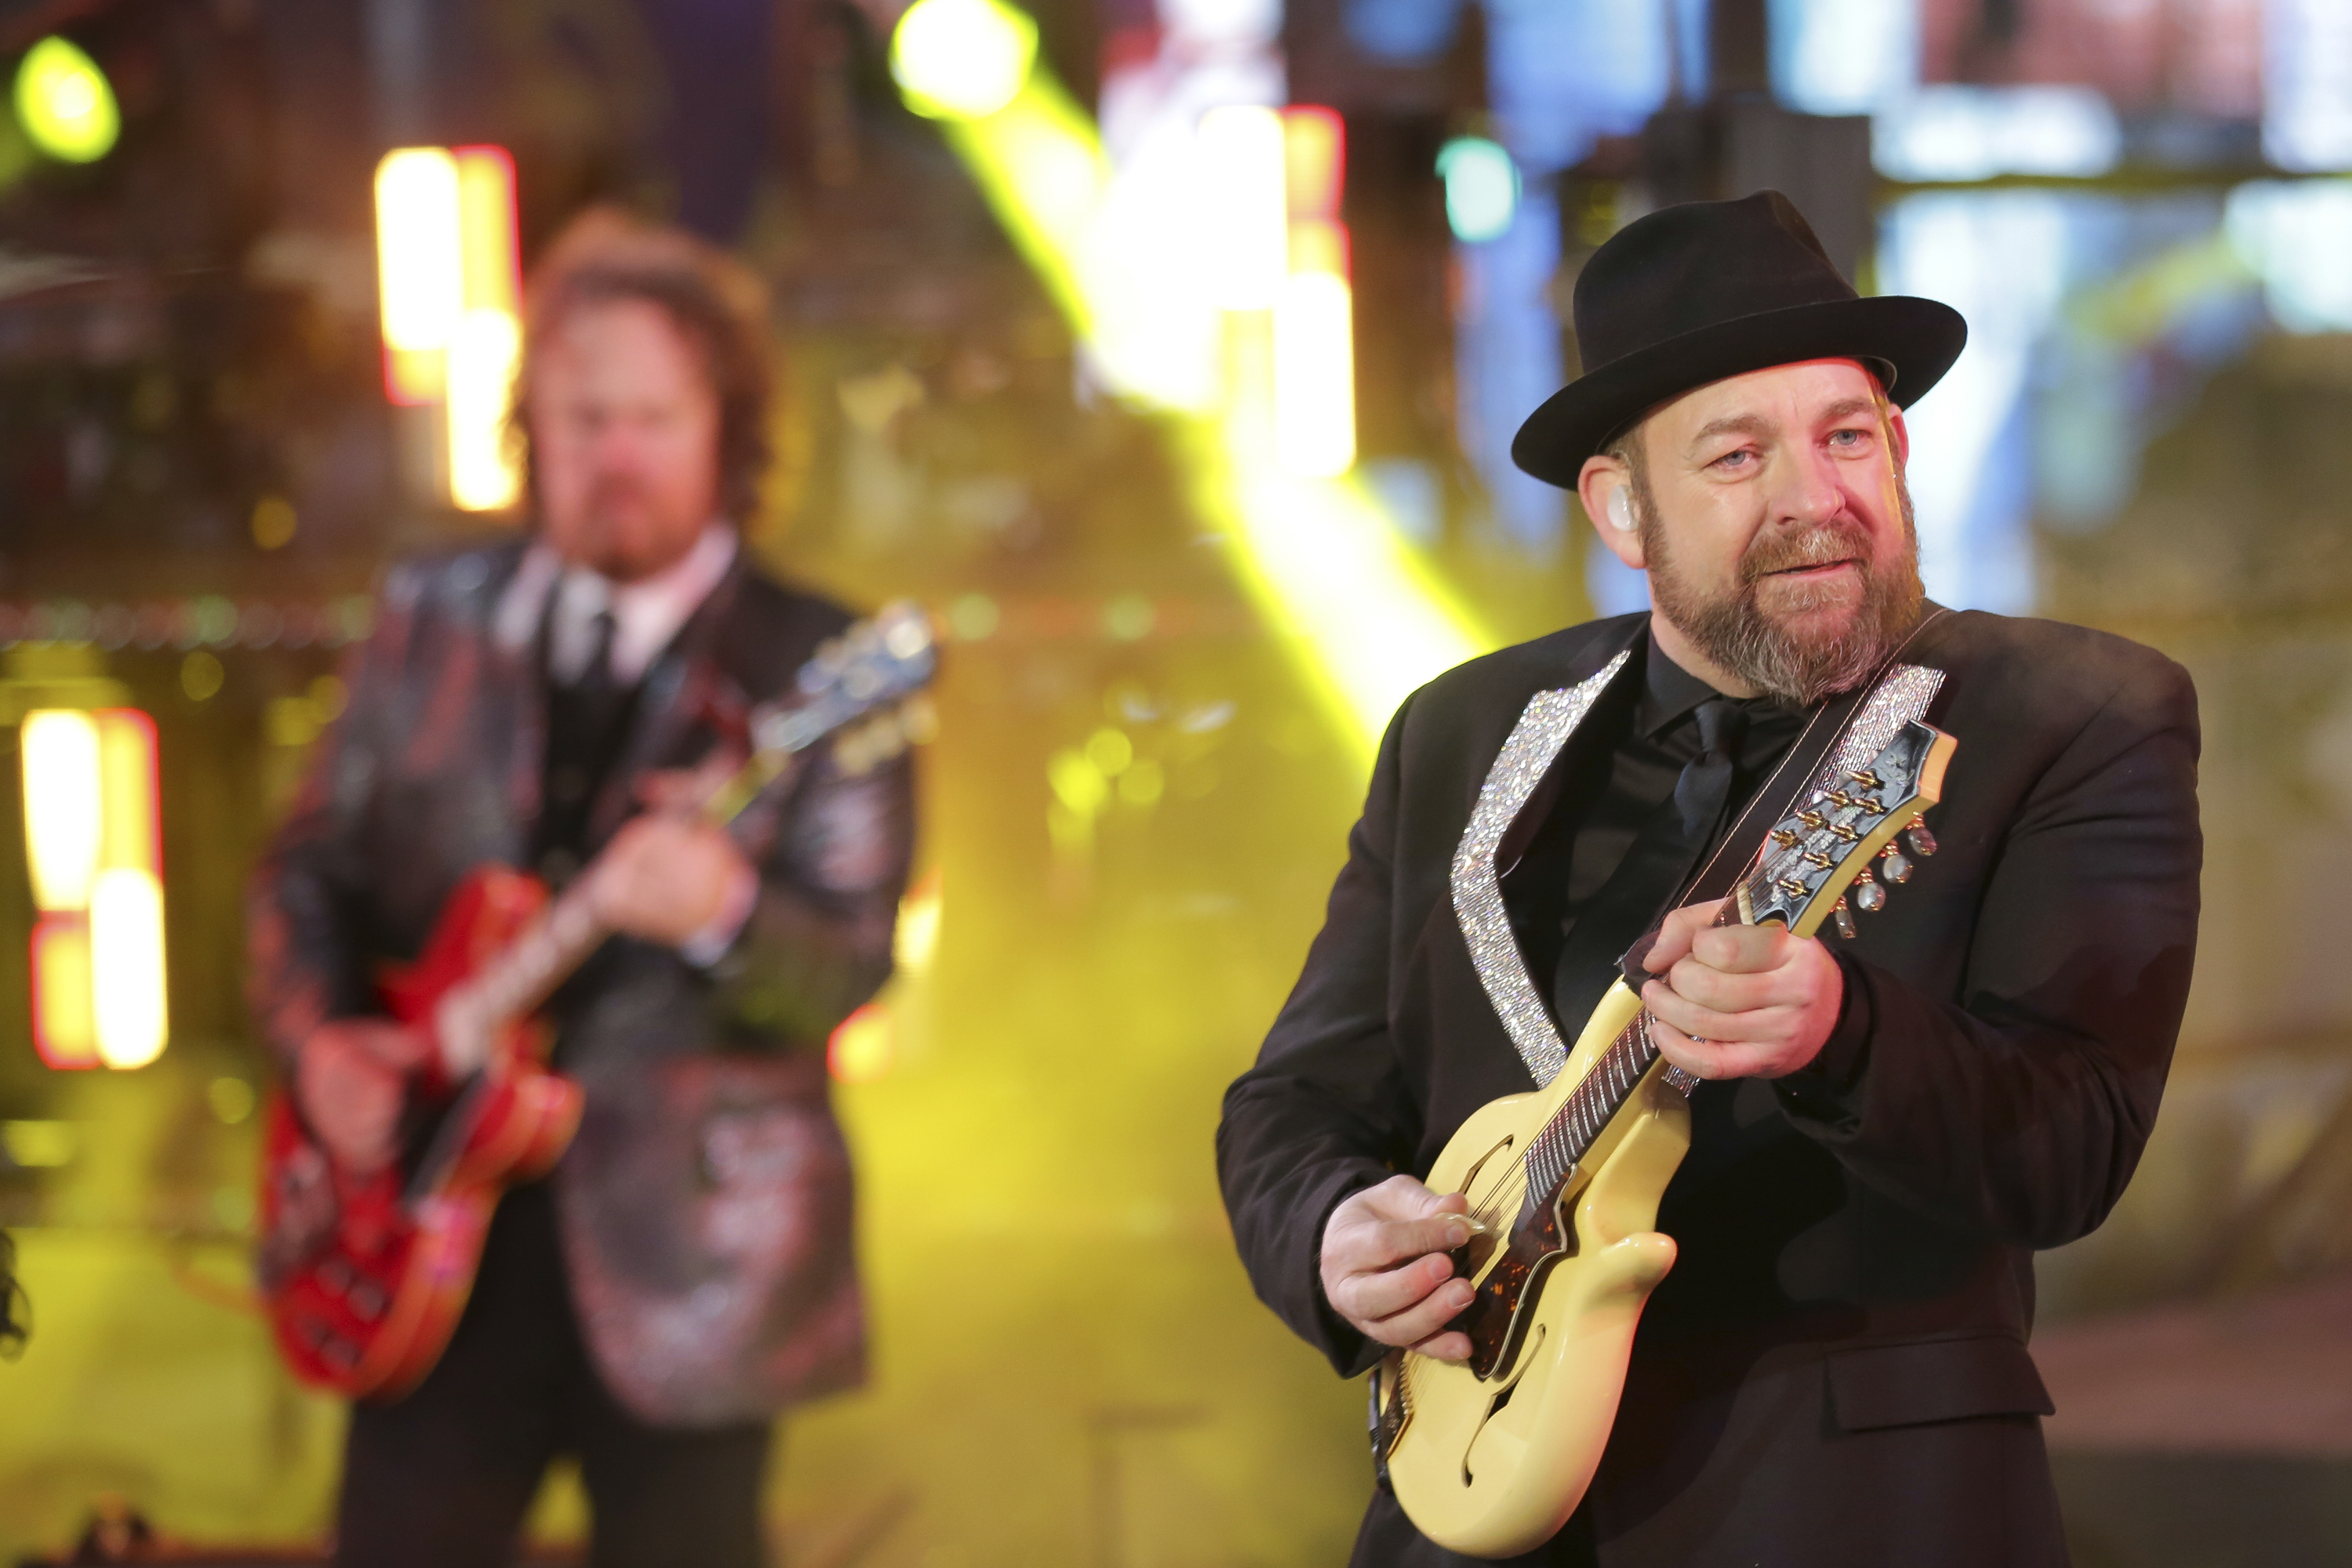 "<div class=""meta image-caption""><div class=""origin-logo origin-image ap""><span>AP</span></div><span class=""caption-text"">Kristian Bush, right, of Sugarland, performs on stage at the New Year's Eve celebration in Times Square on Sunday, Dec. 31, 2017, in New York. ) (Brent N. Clarke/Invision/AP)</span></div>"